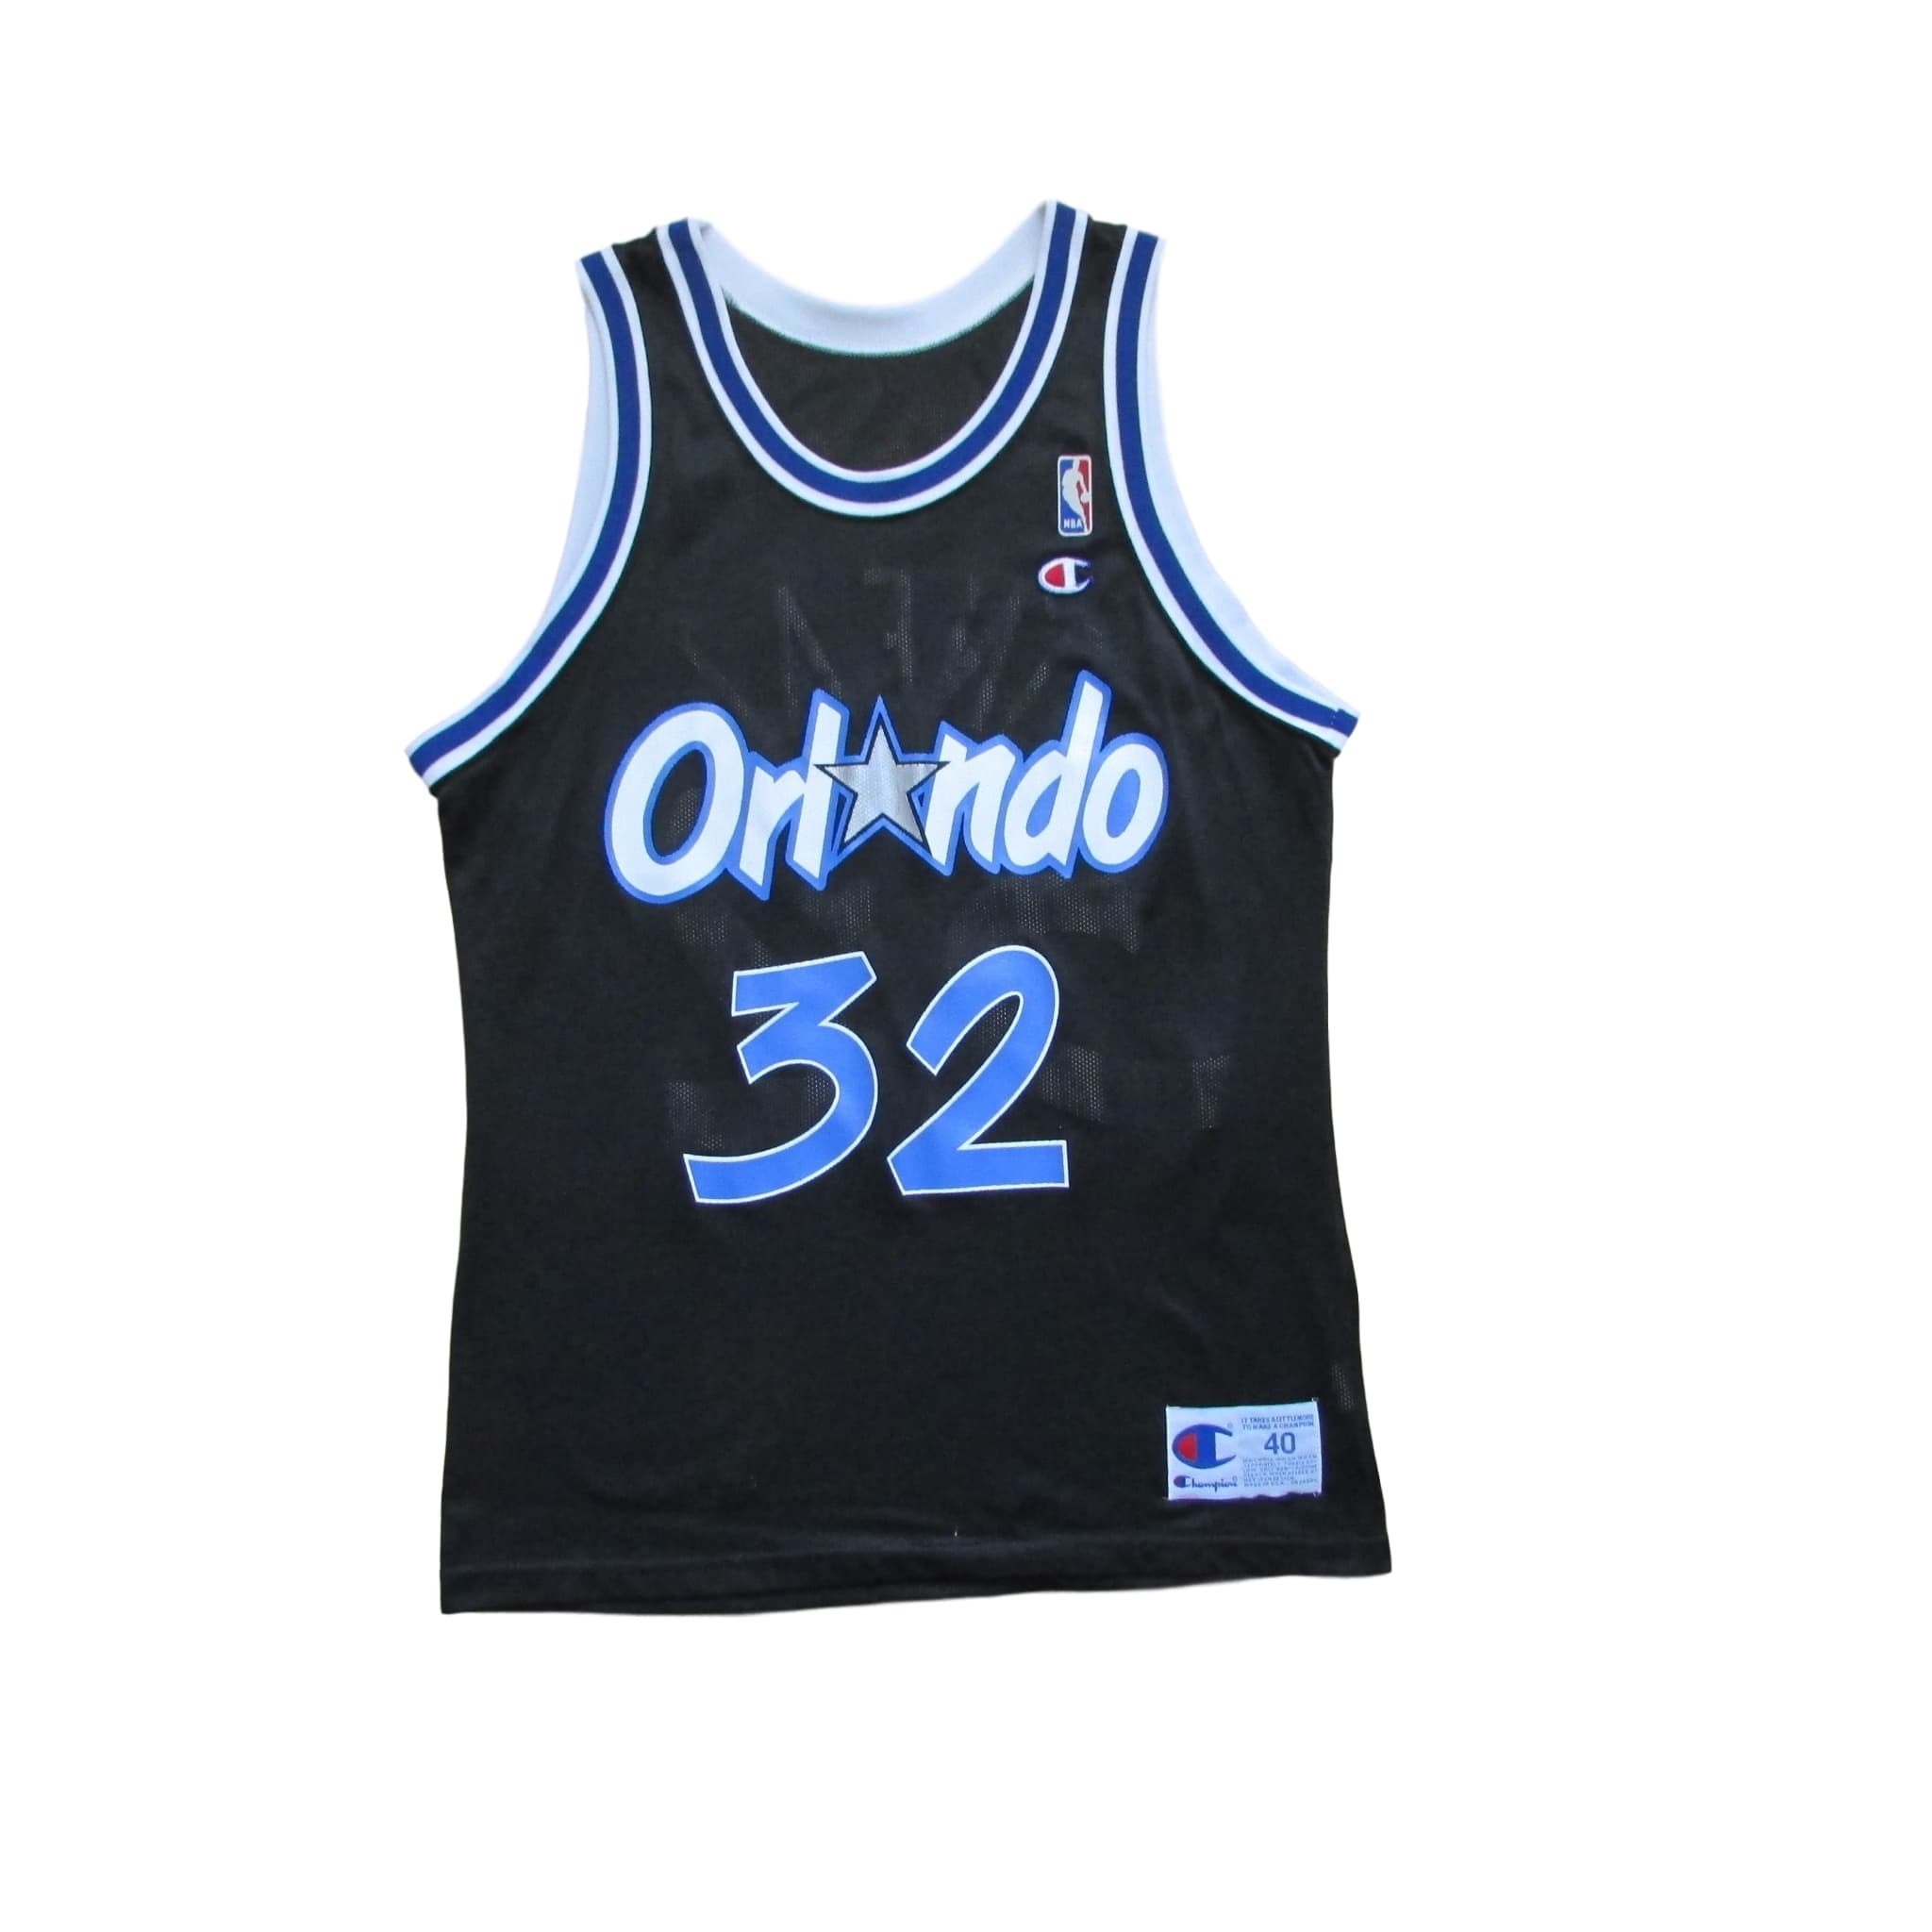 Orlando Magic Shaquille O'Neal Basketball Jersey 1993 Champion Sz 40